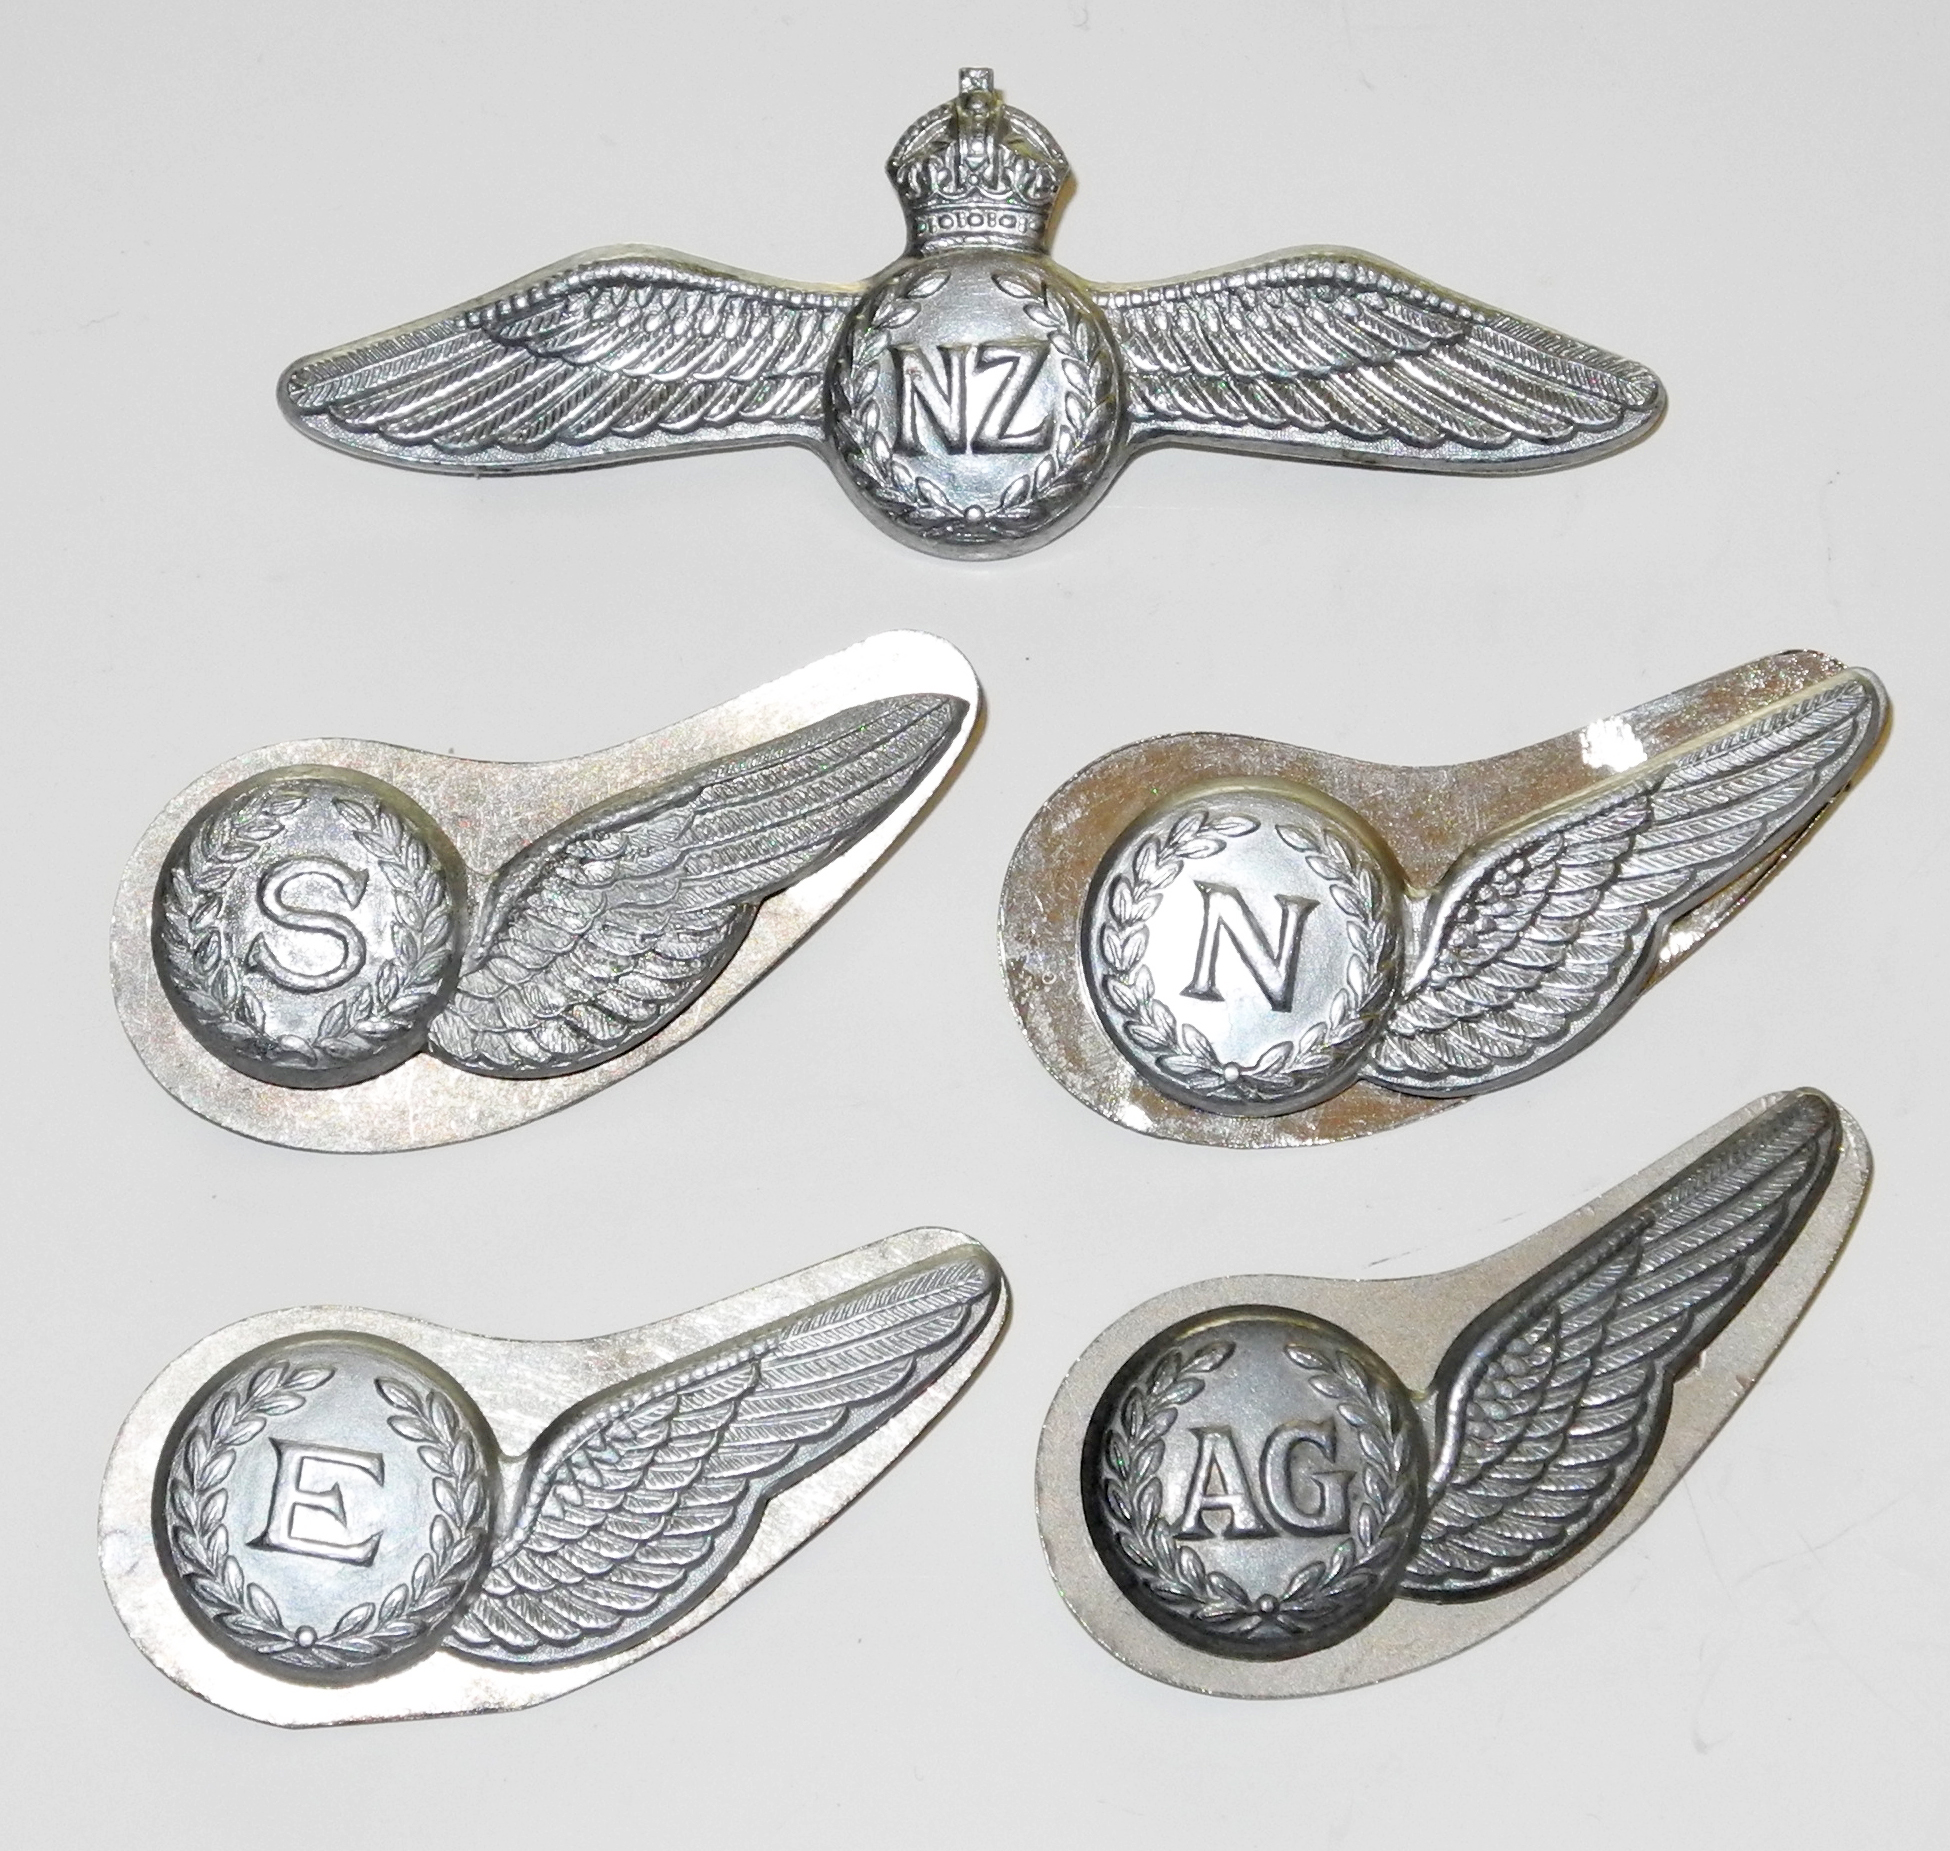 RNZAF flight qualification badges / insignia